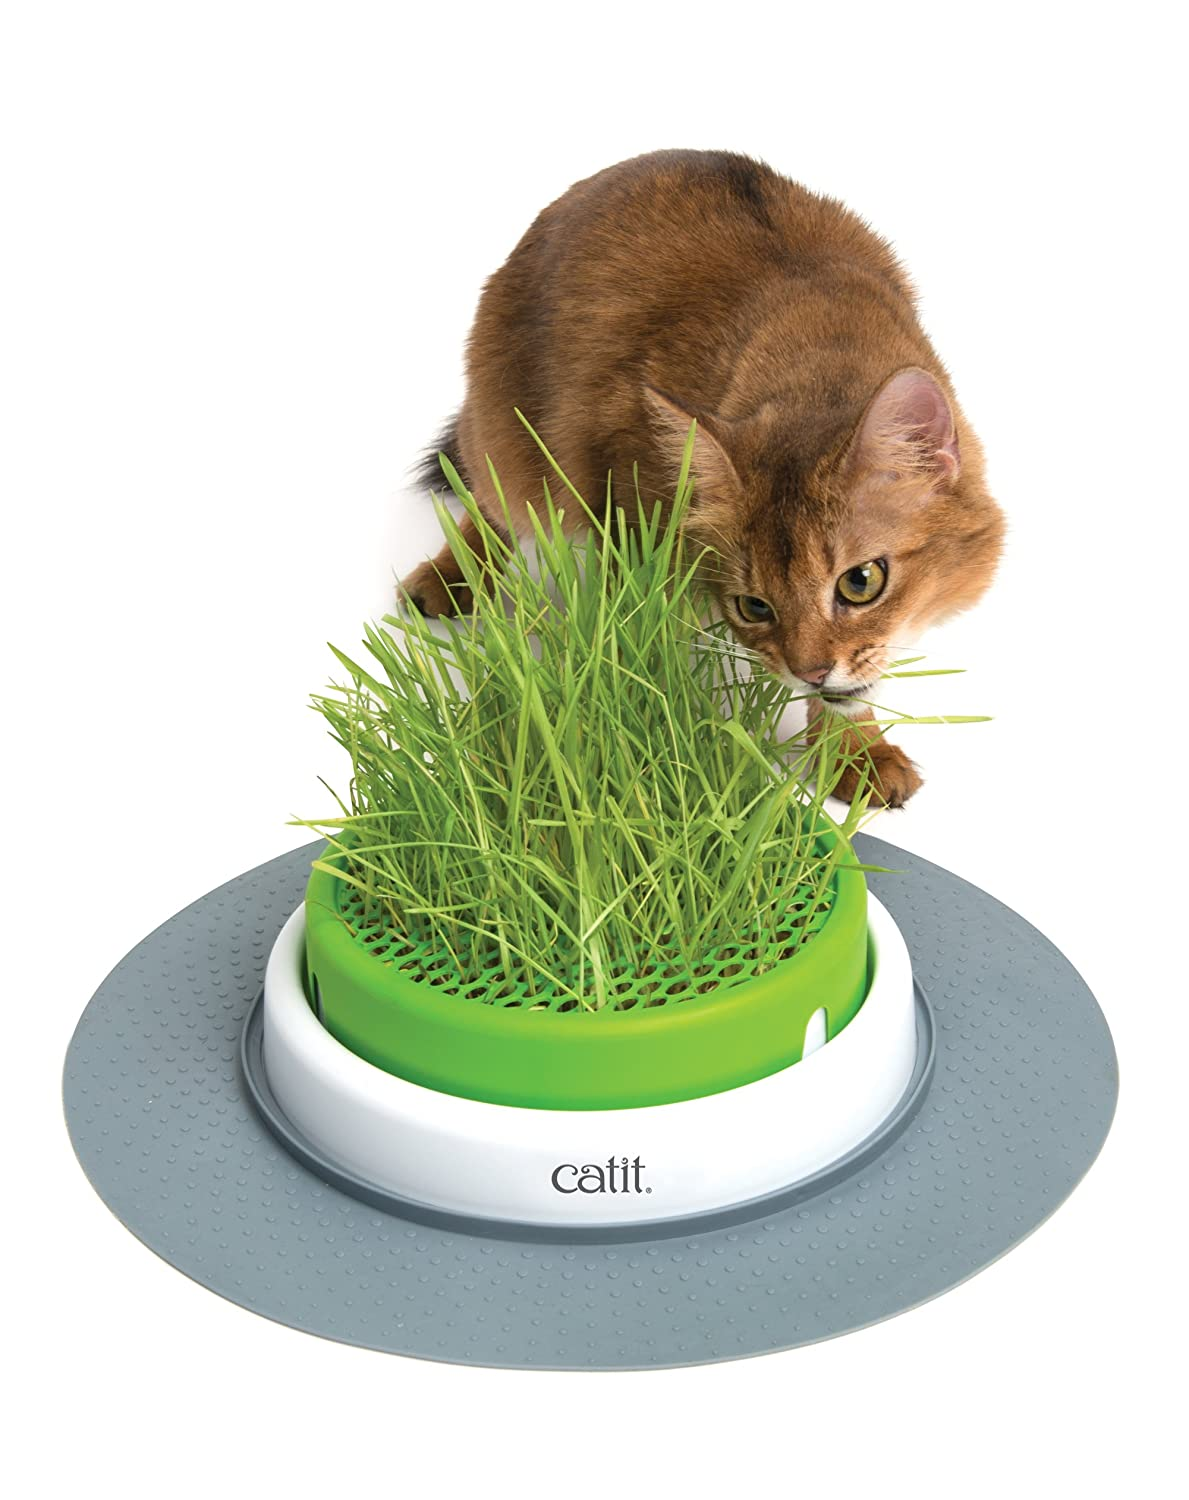 catit-cat-grass-planter